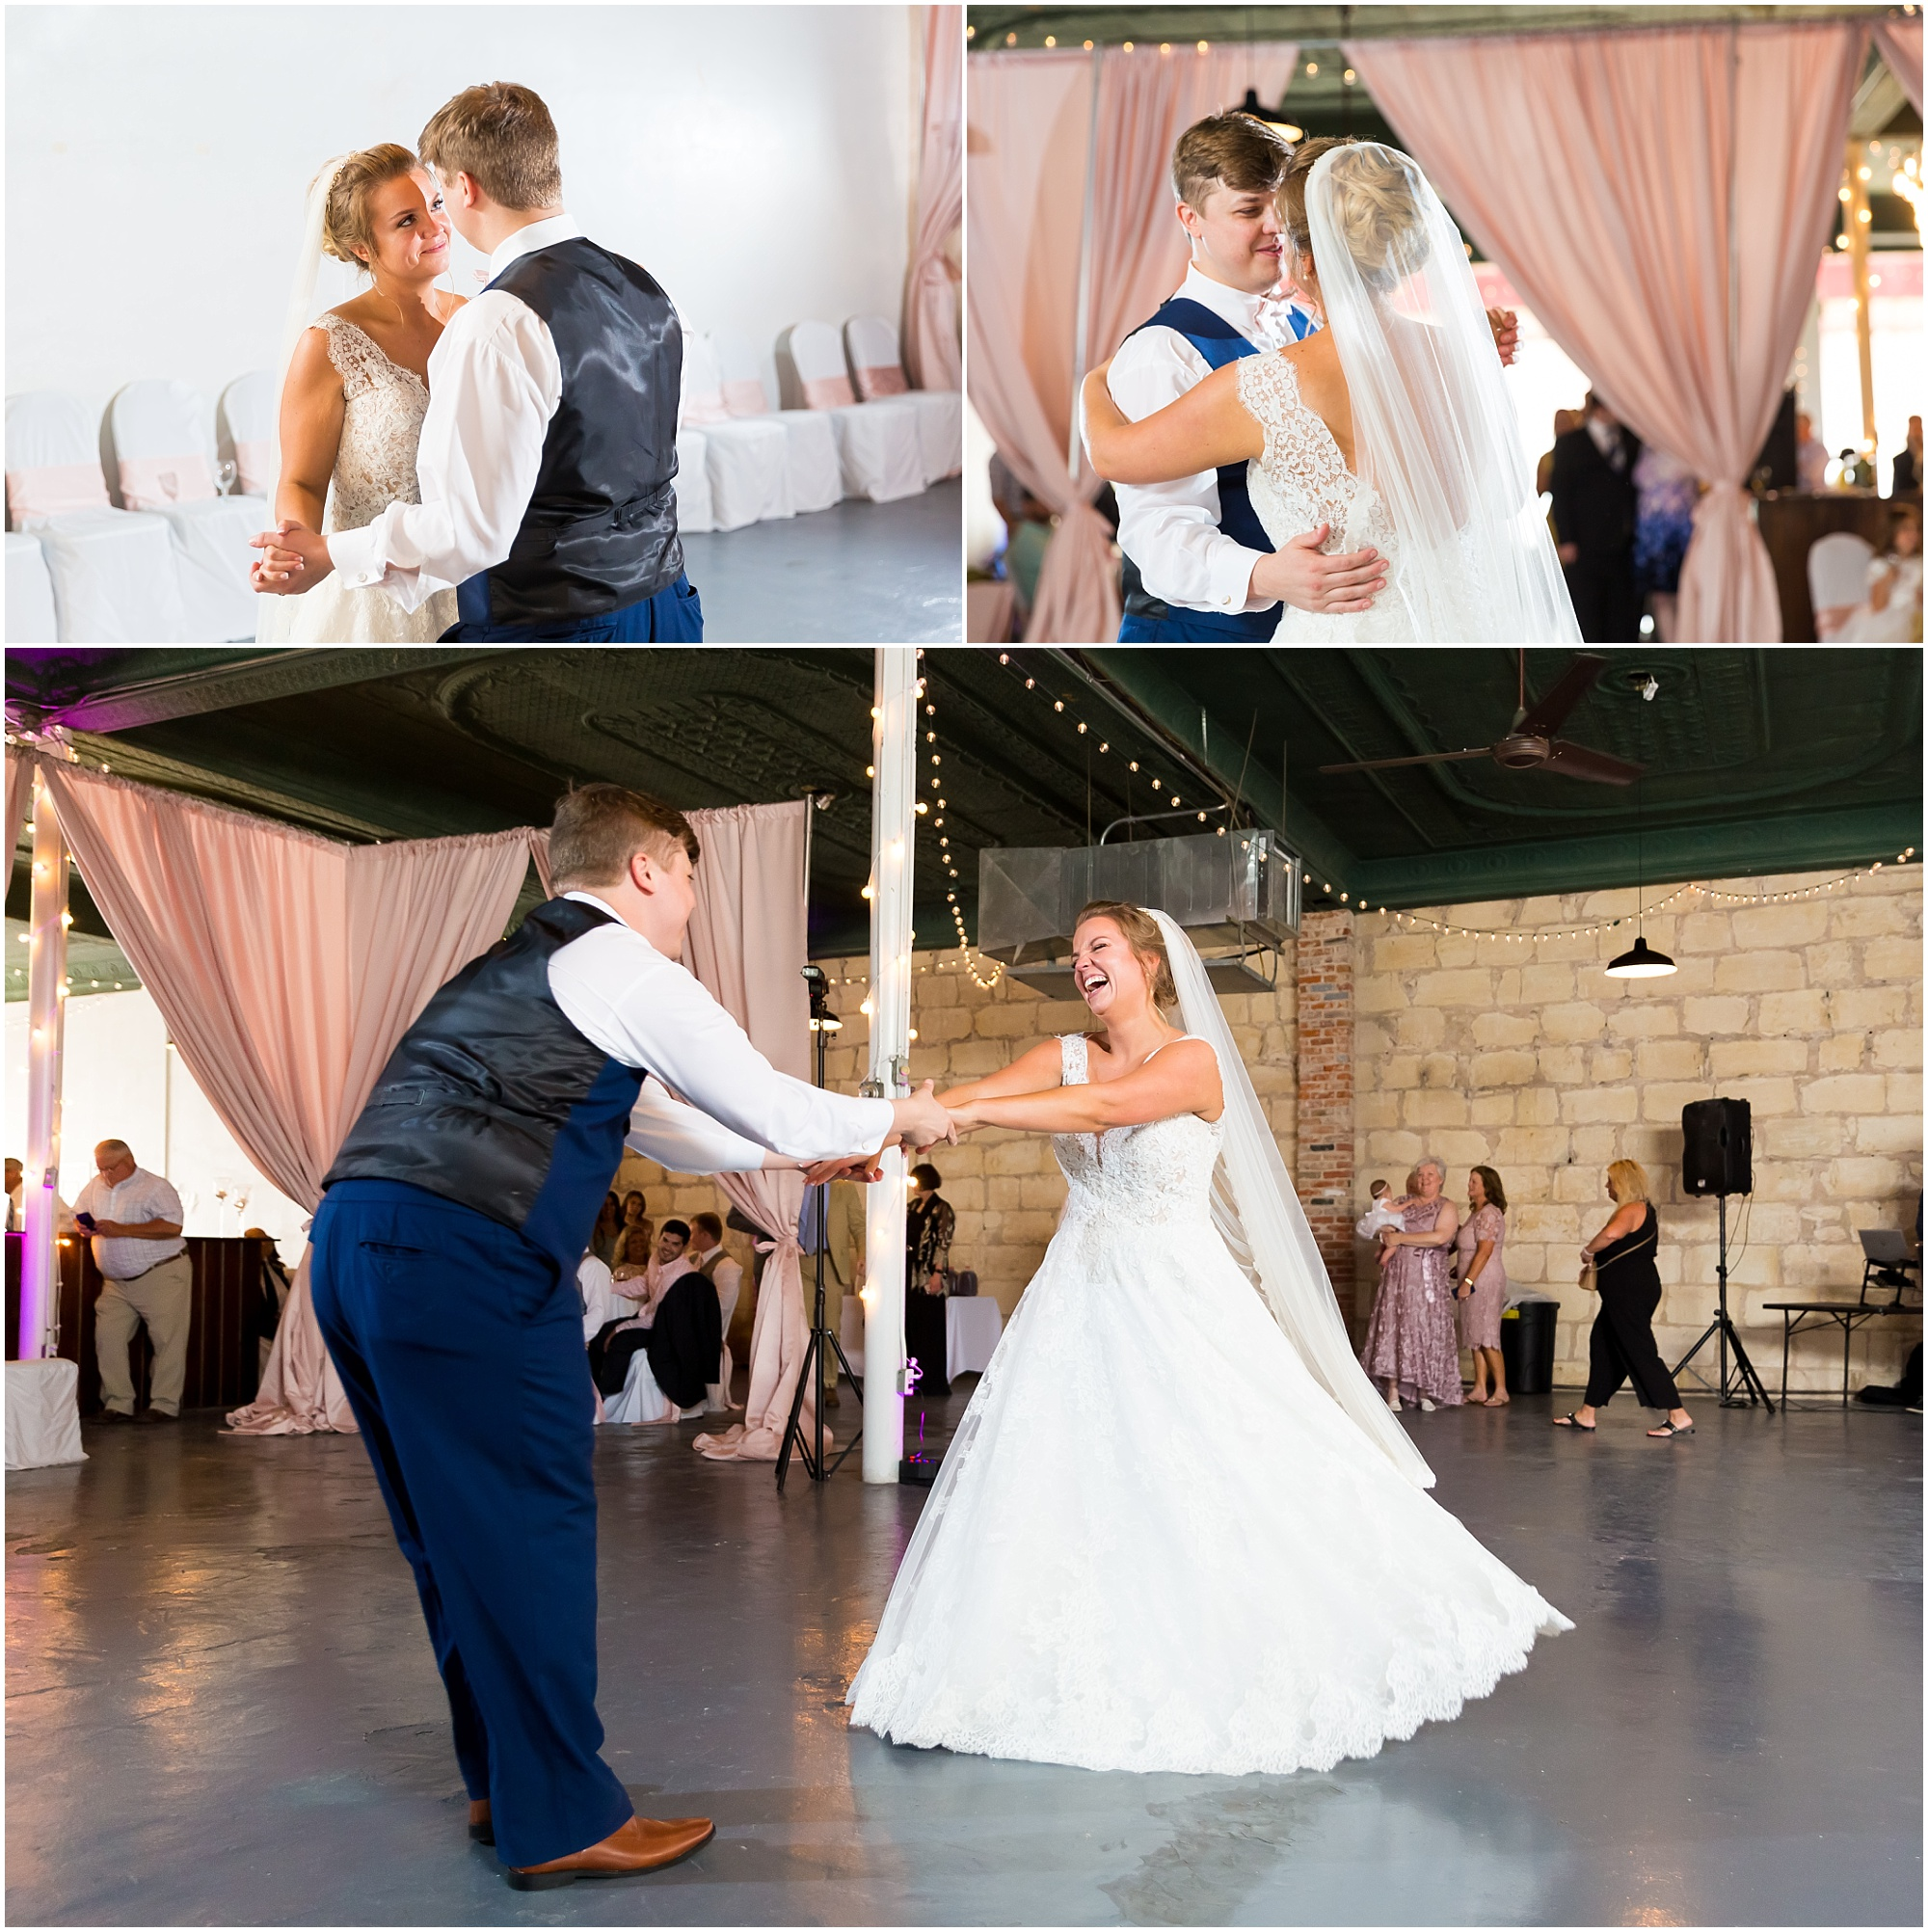 A bride and groom laugh during their first dance at their wedding reception at The Eagle Historic Warehouse in Hillsboro, Texas - Jason & Melaina Photography - www.jasonandmelaina.com